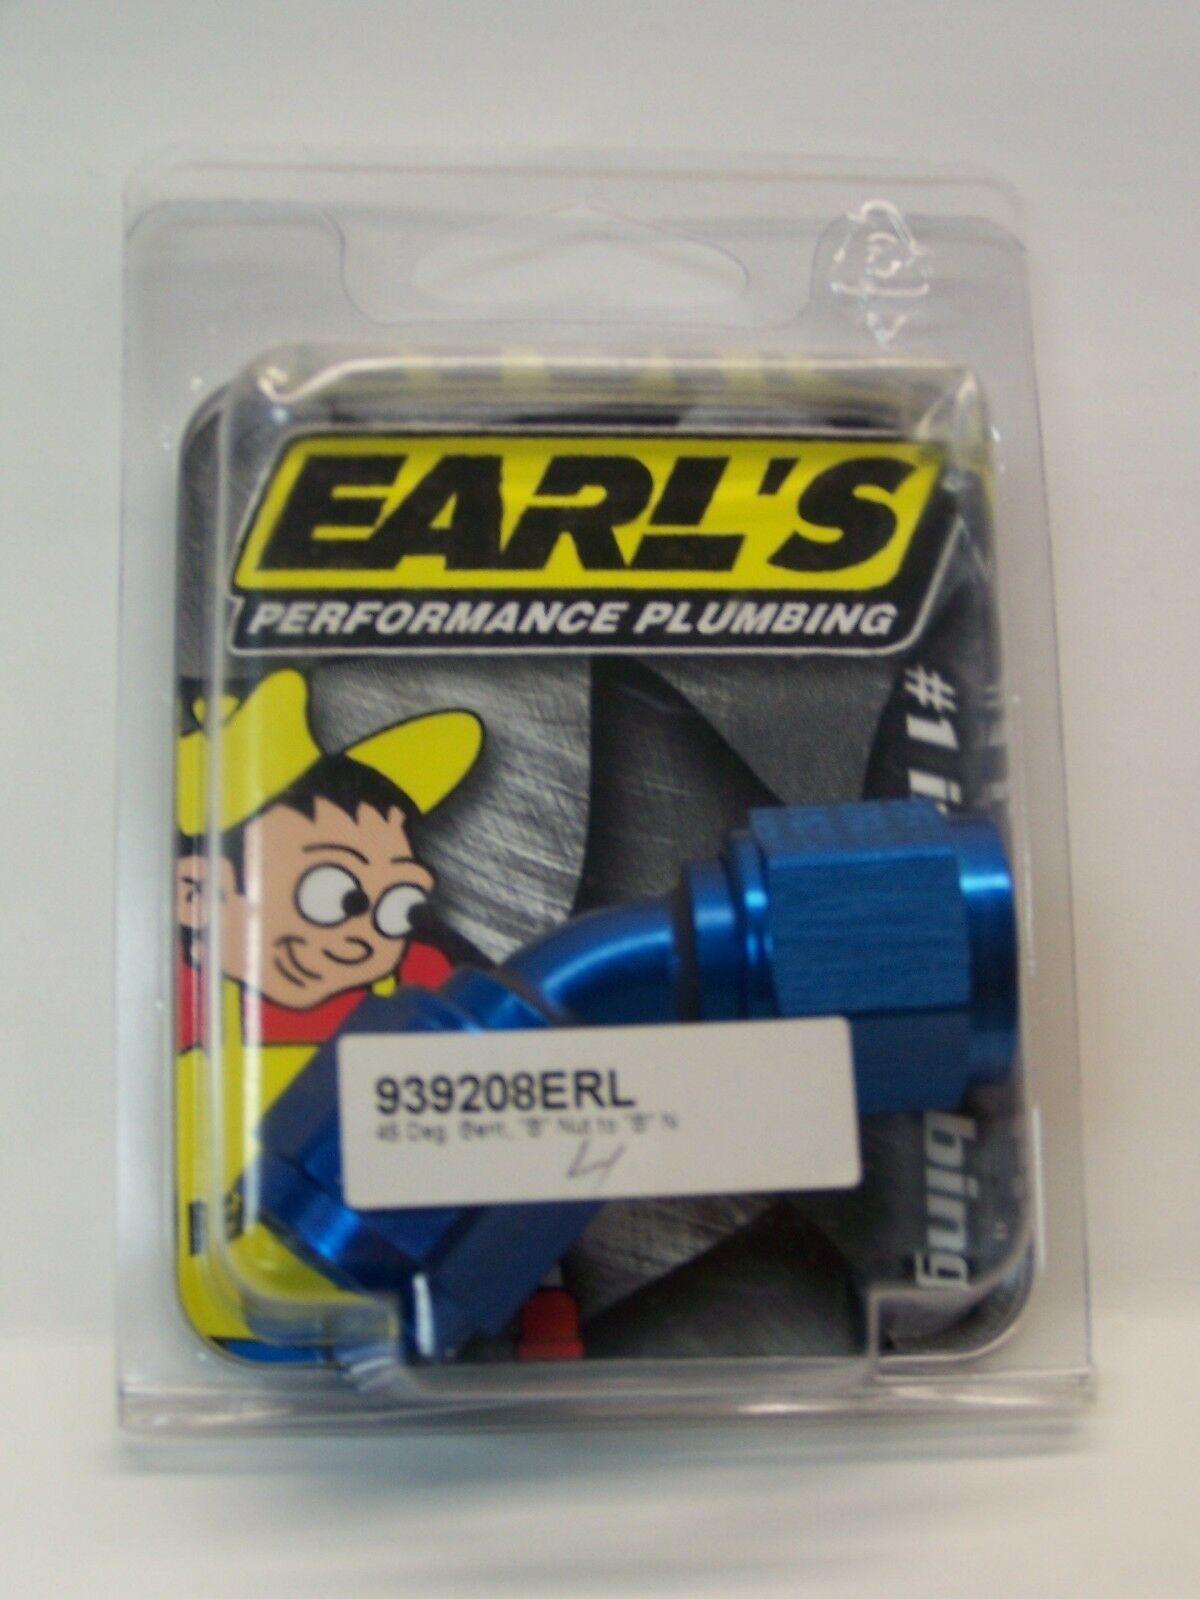 EARLS 45 DEG -8 NUT TO -8 NUT #939208